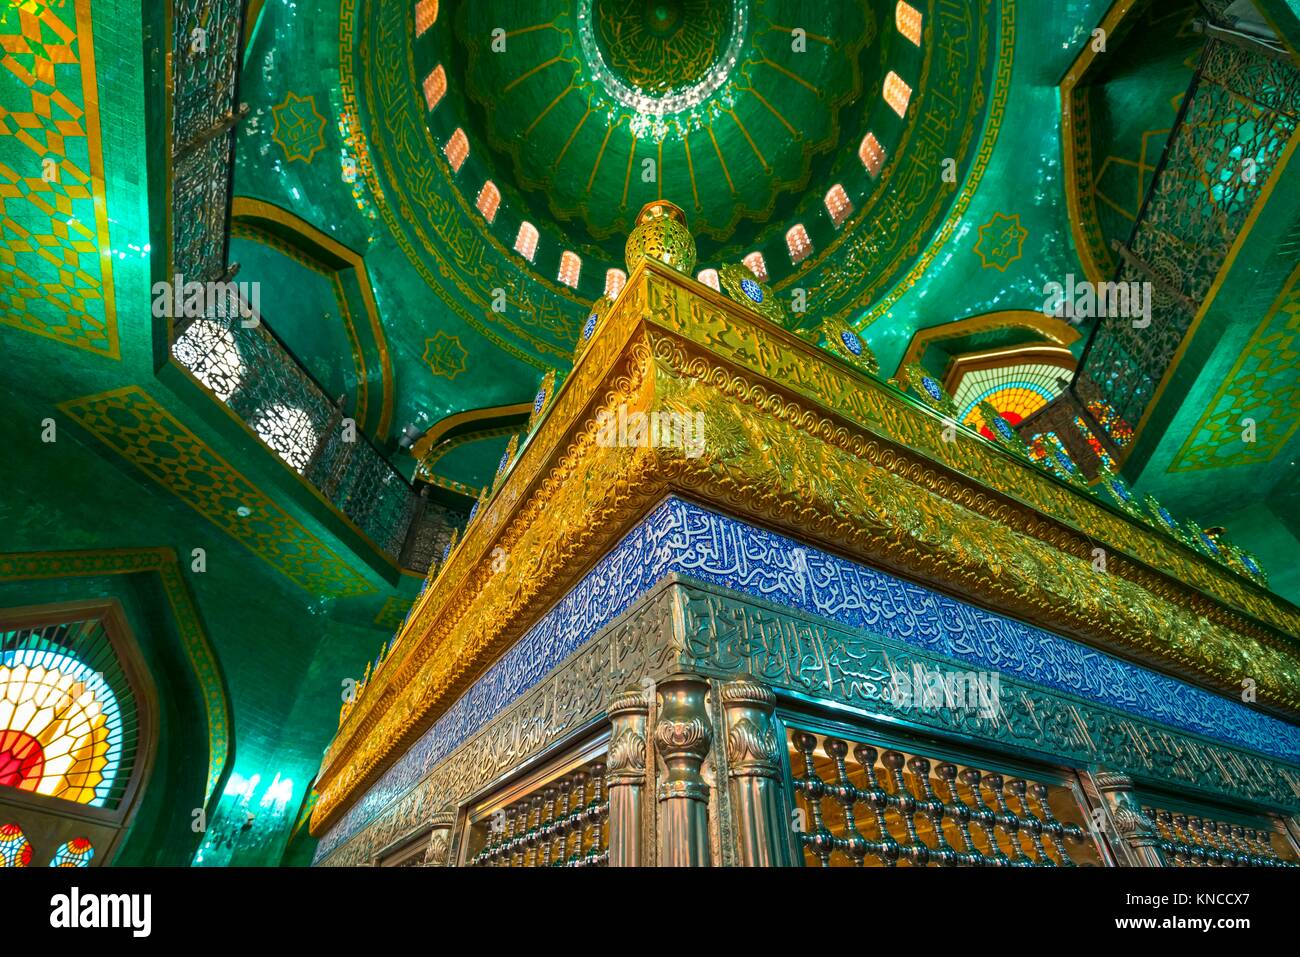 Bibi-Heybat Mosque, Baku City, Azerbaijan, Middle East. - Stock Image